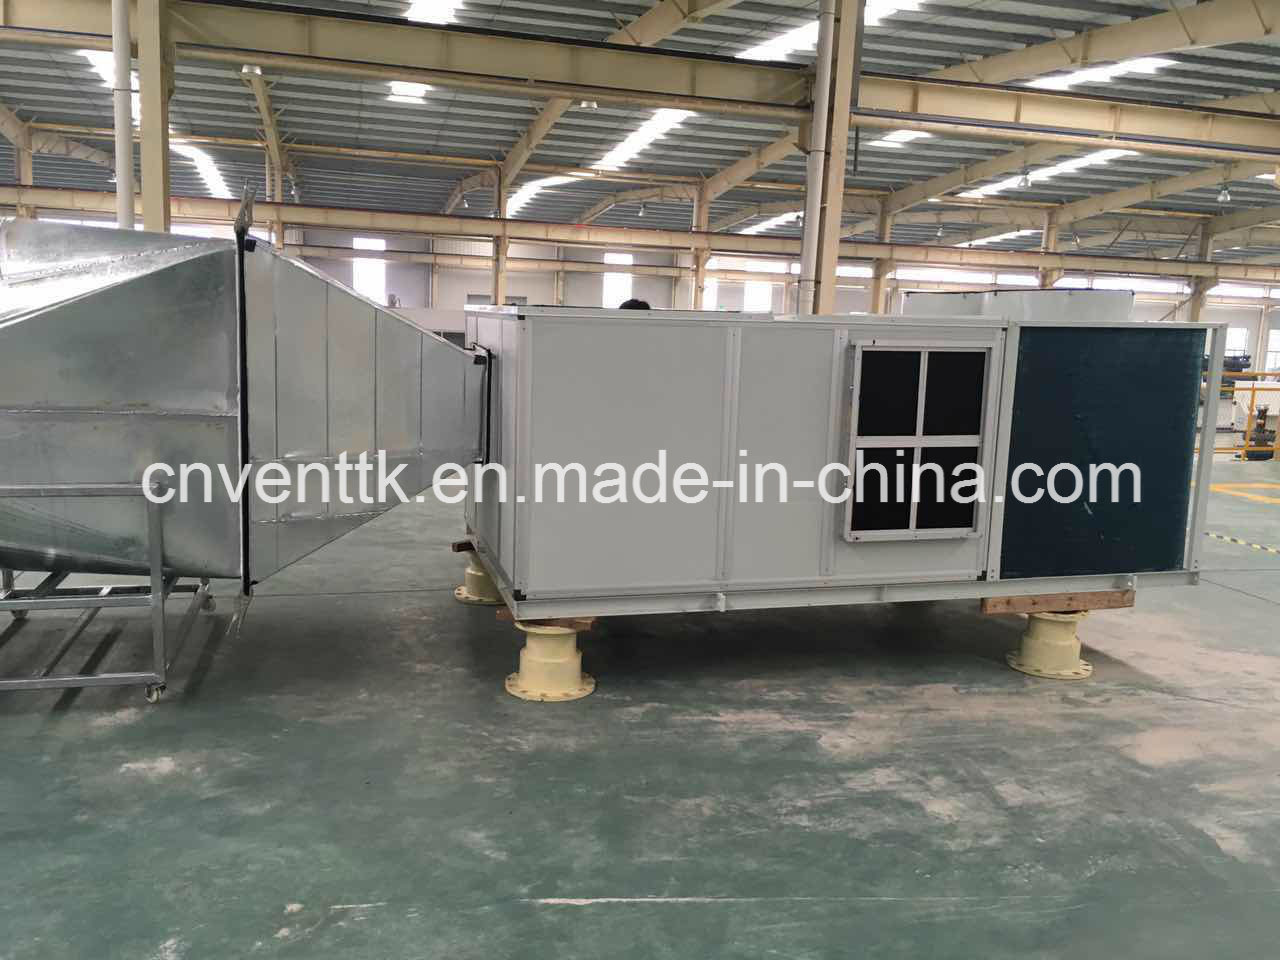 Clean Room Operating Room HEPA Filter Air Handling Unit